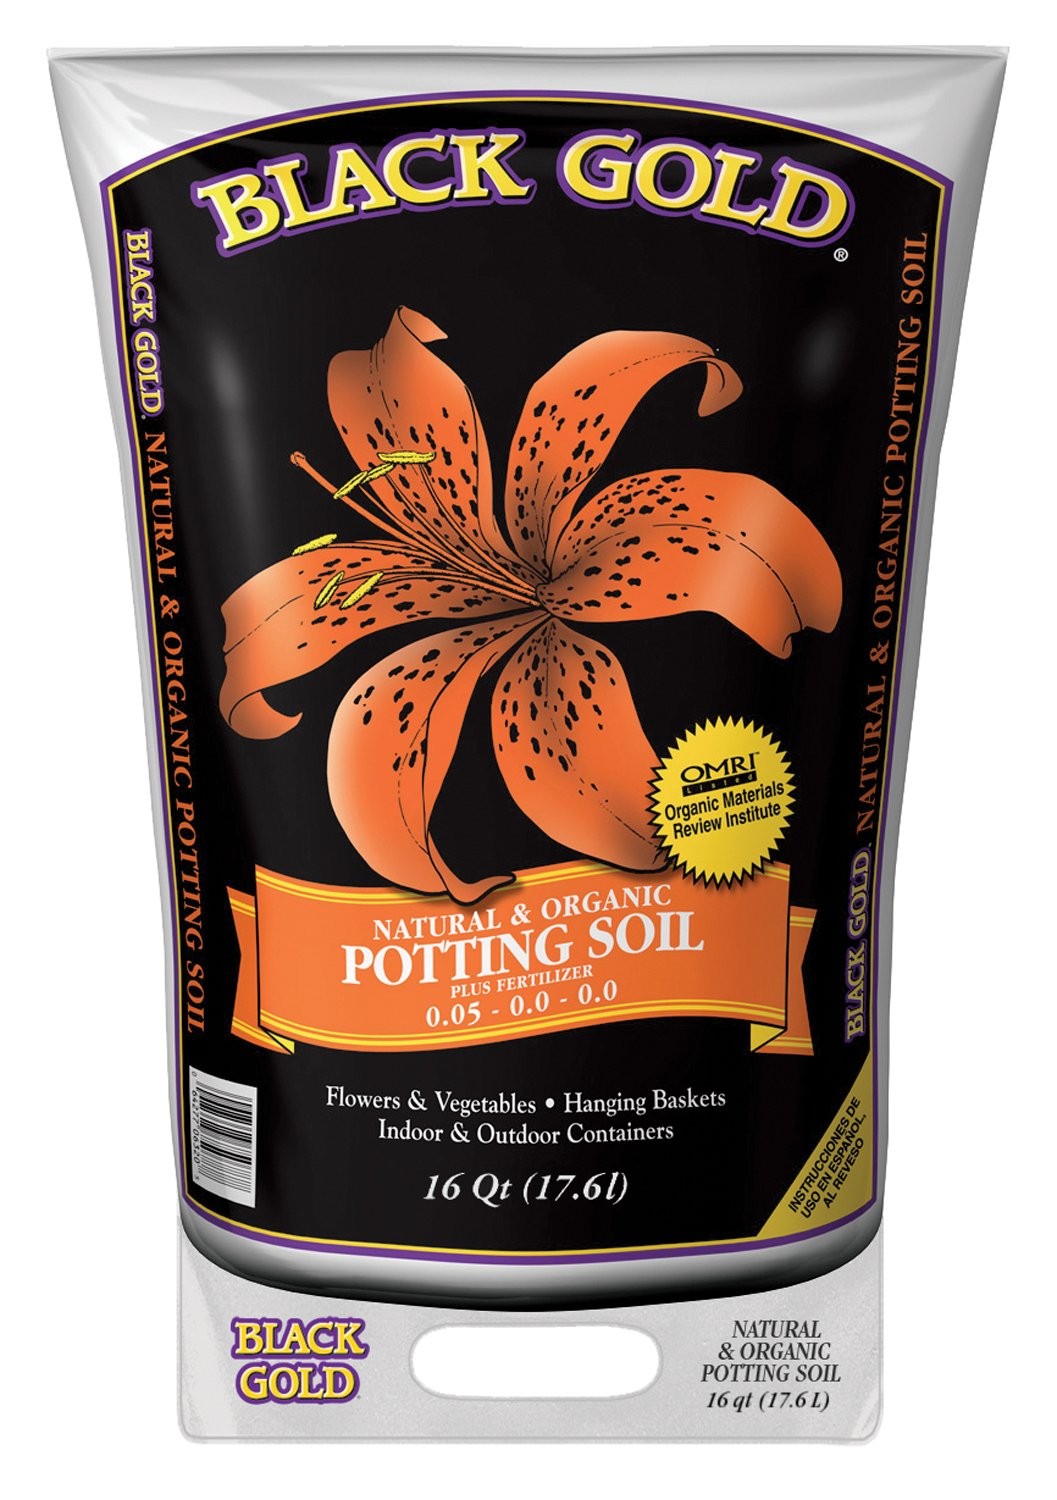 Black Gold Organic Potting Soil